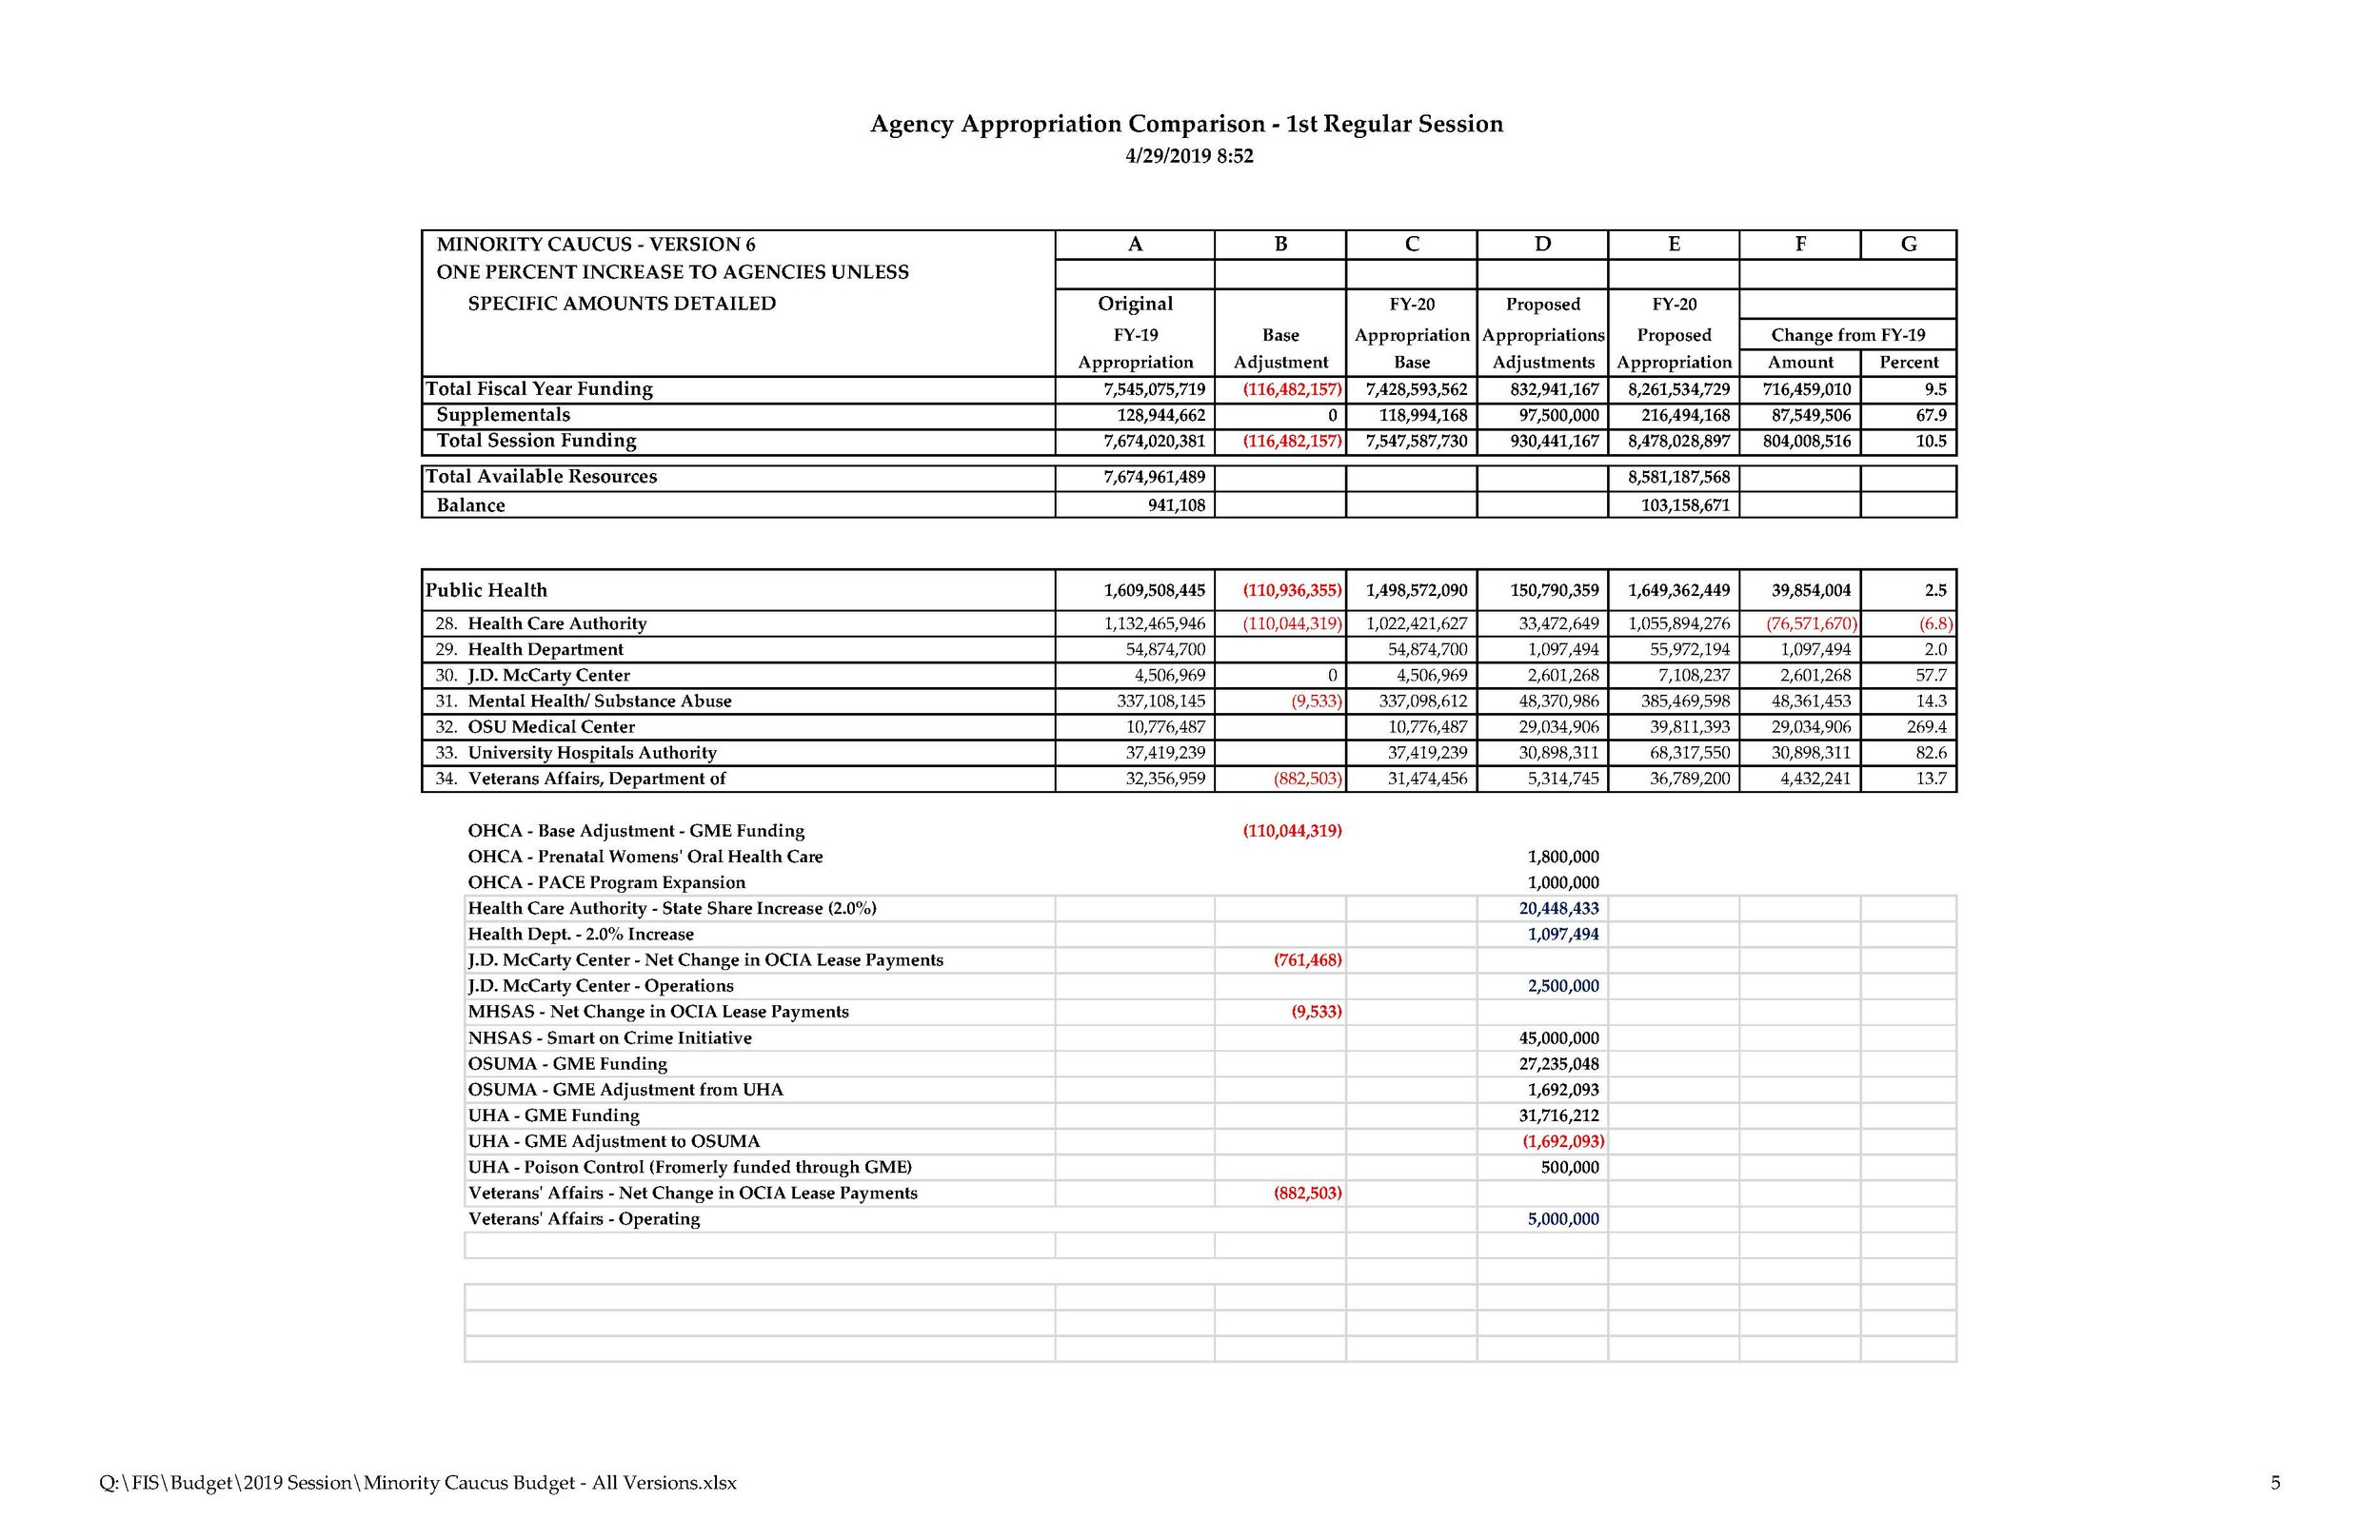 Minority Caucus Budget - All Versions_Page_05.jpg